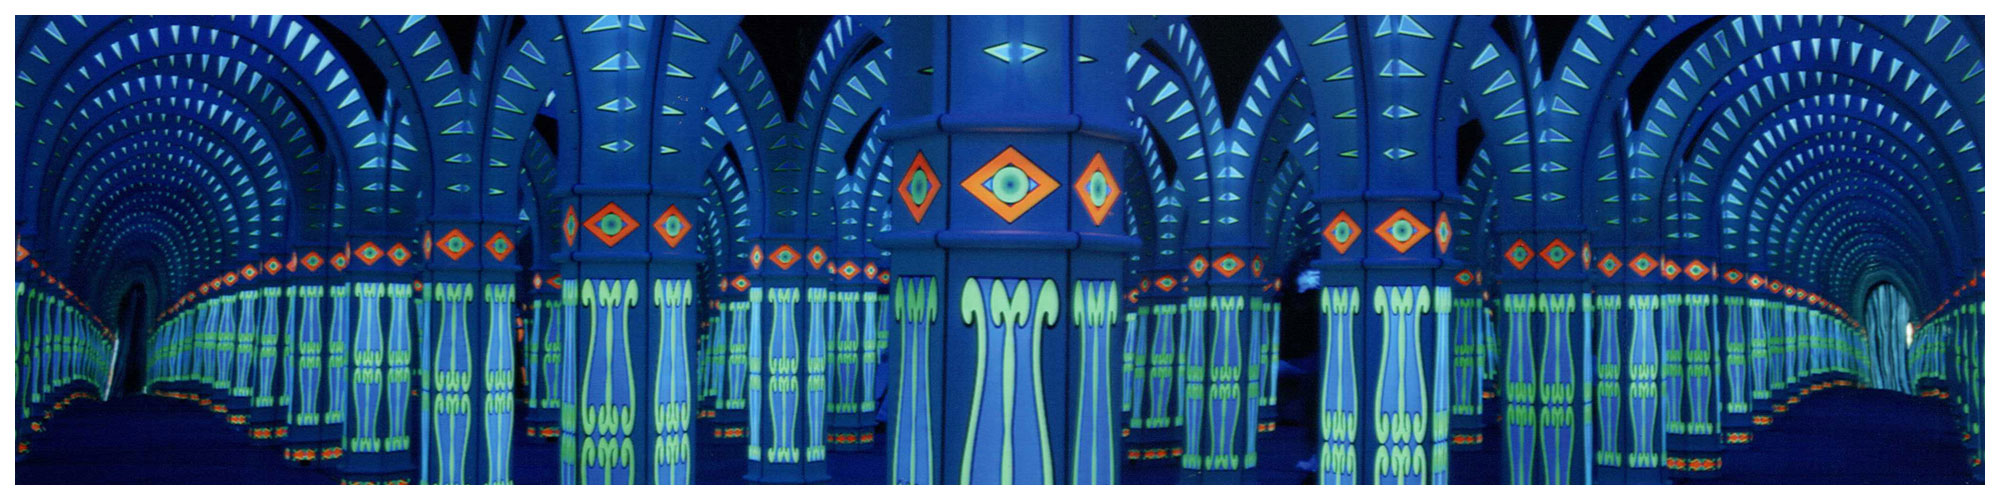 Amazing Mirror Maze (Header Background) | Gatlinburg Attractions